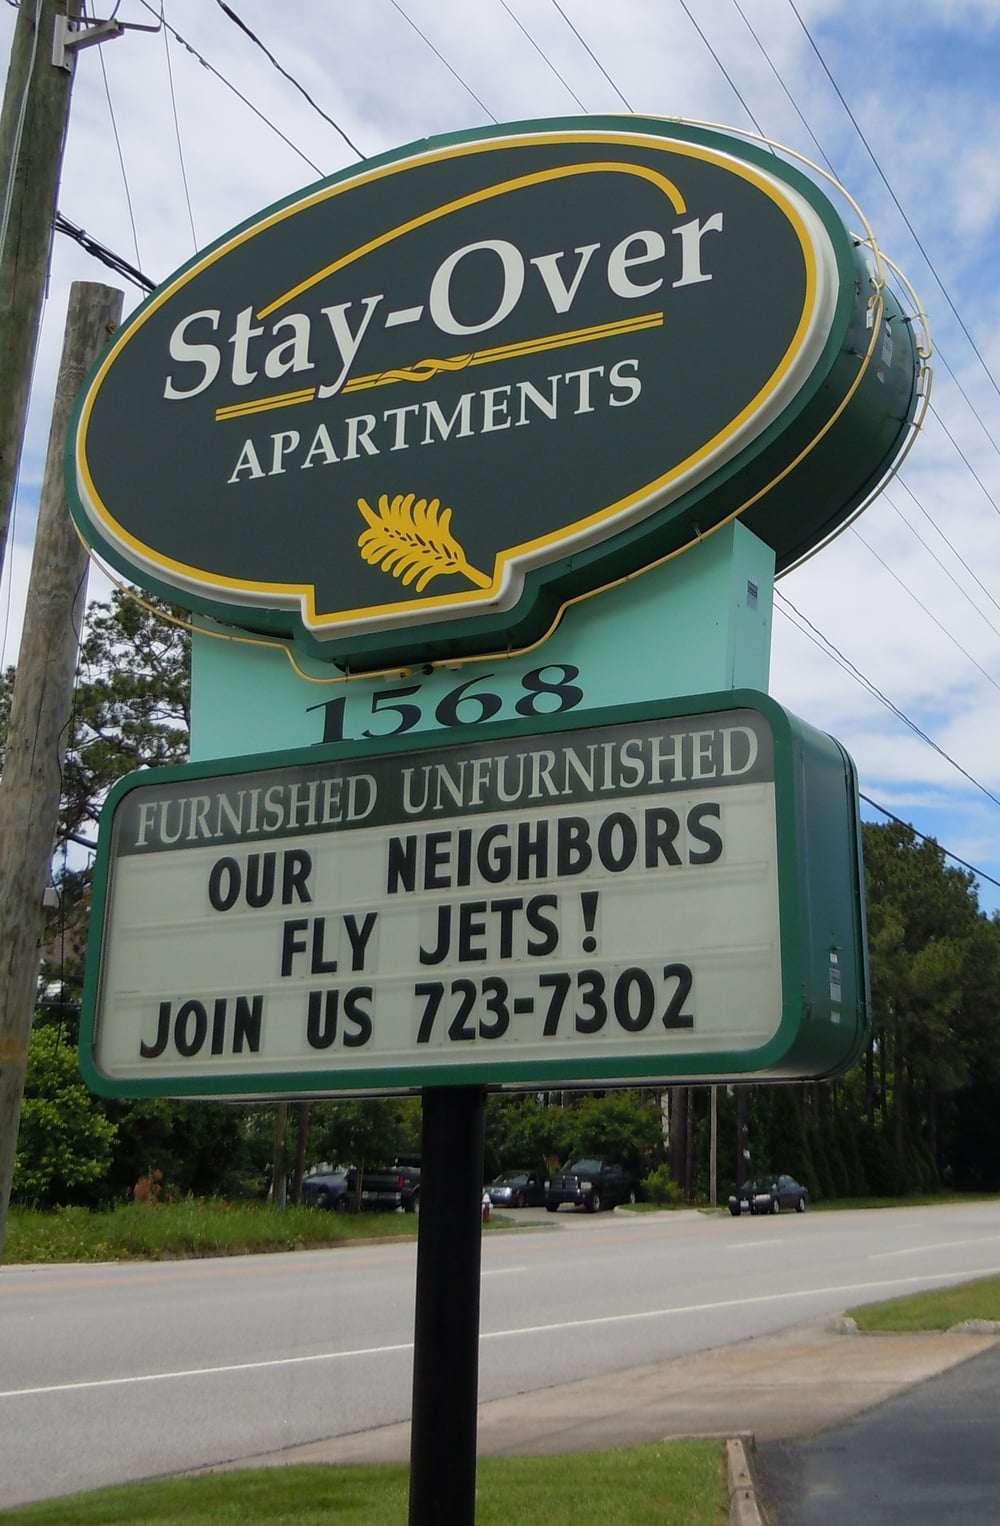 management — stay-over apartments